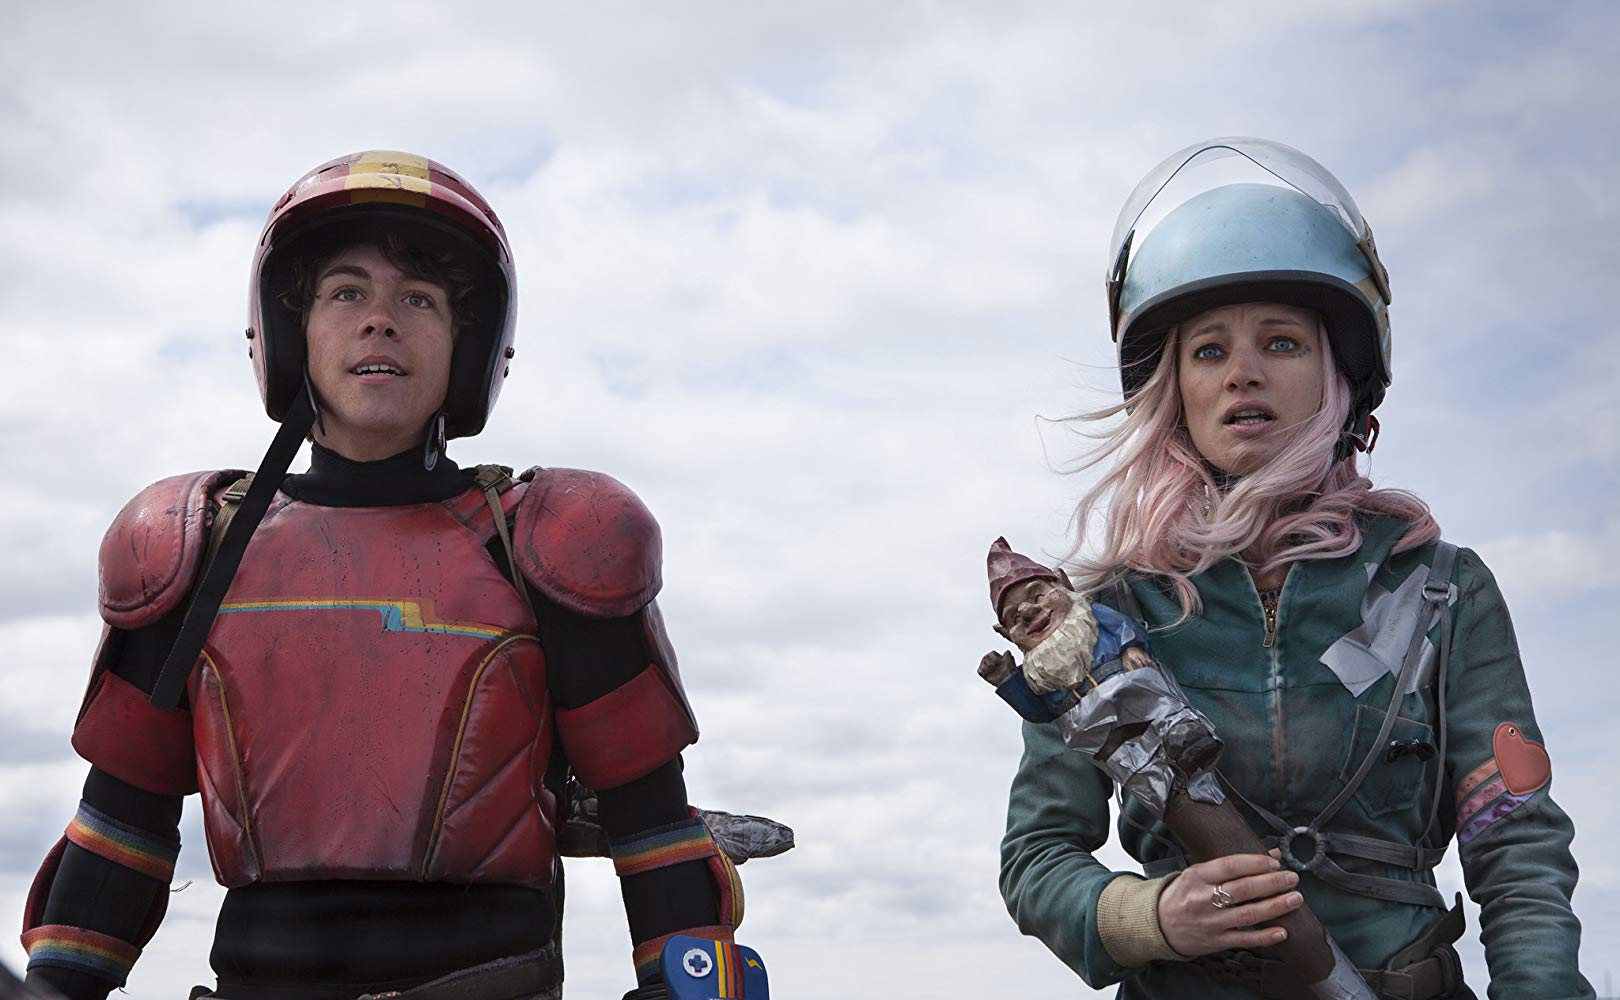 The Kid (Munro Chambers) and Apple (Laurence Leboeuf) in Turbo Kid (2015)